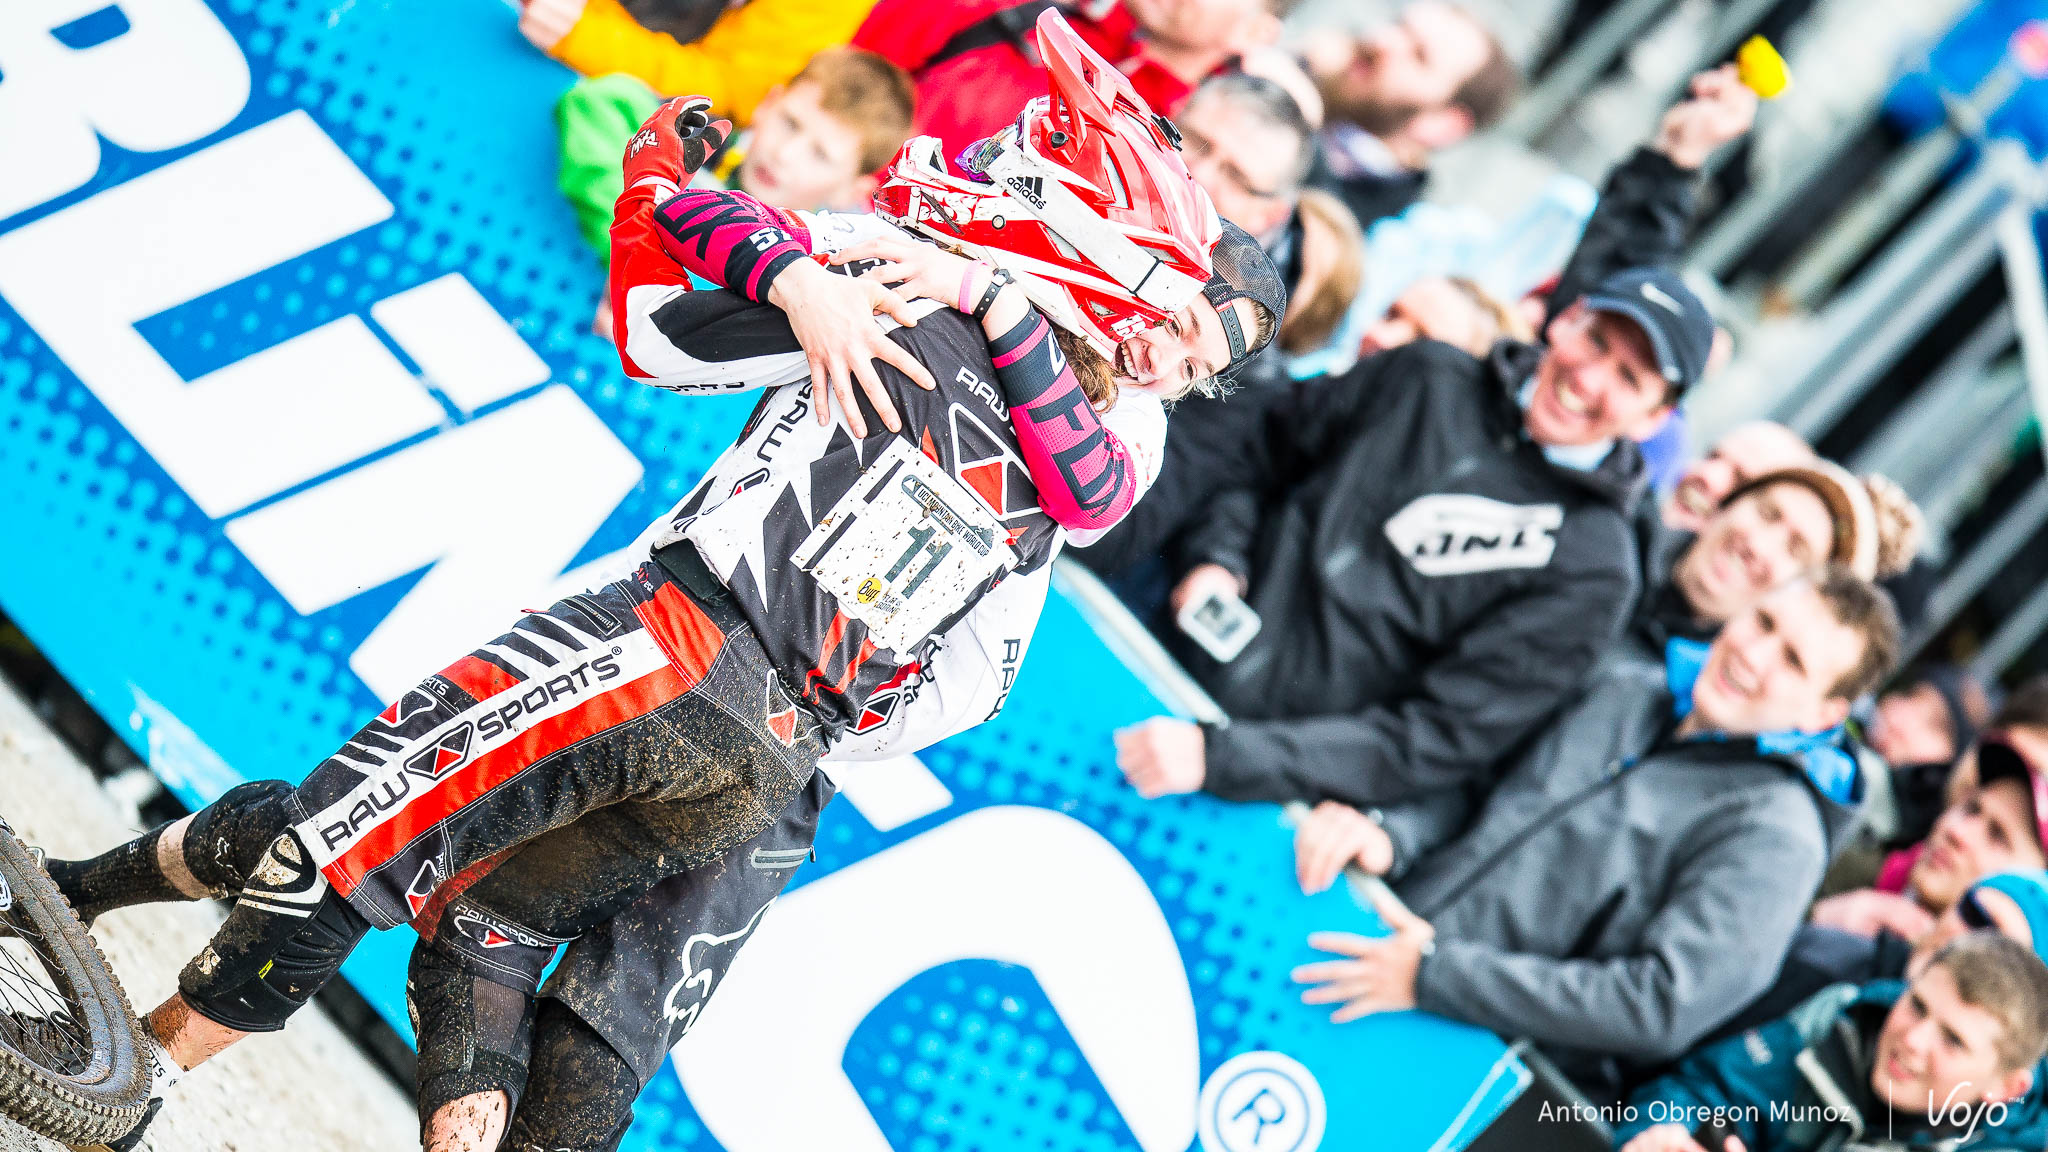 Fort_William_UCI_World_Cup_DH_2015_(finals_Femmes)_(TahneeSeagraves_KatyCurd)_Copyright_Antonio_Obregon_VojoMag-4